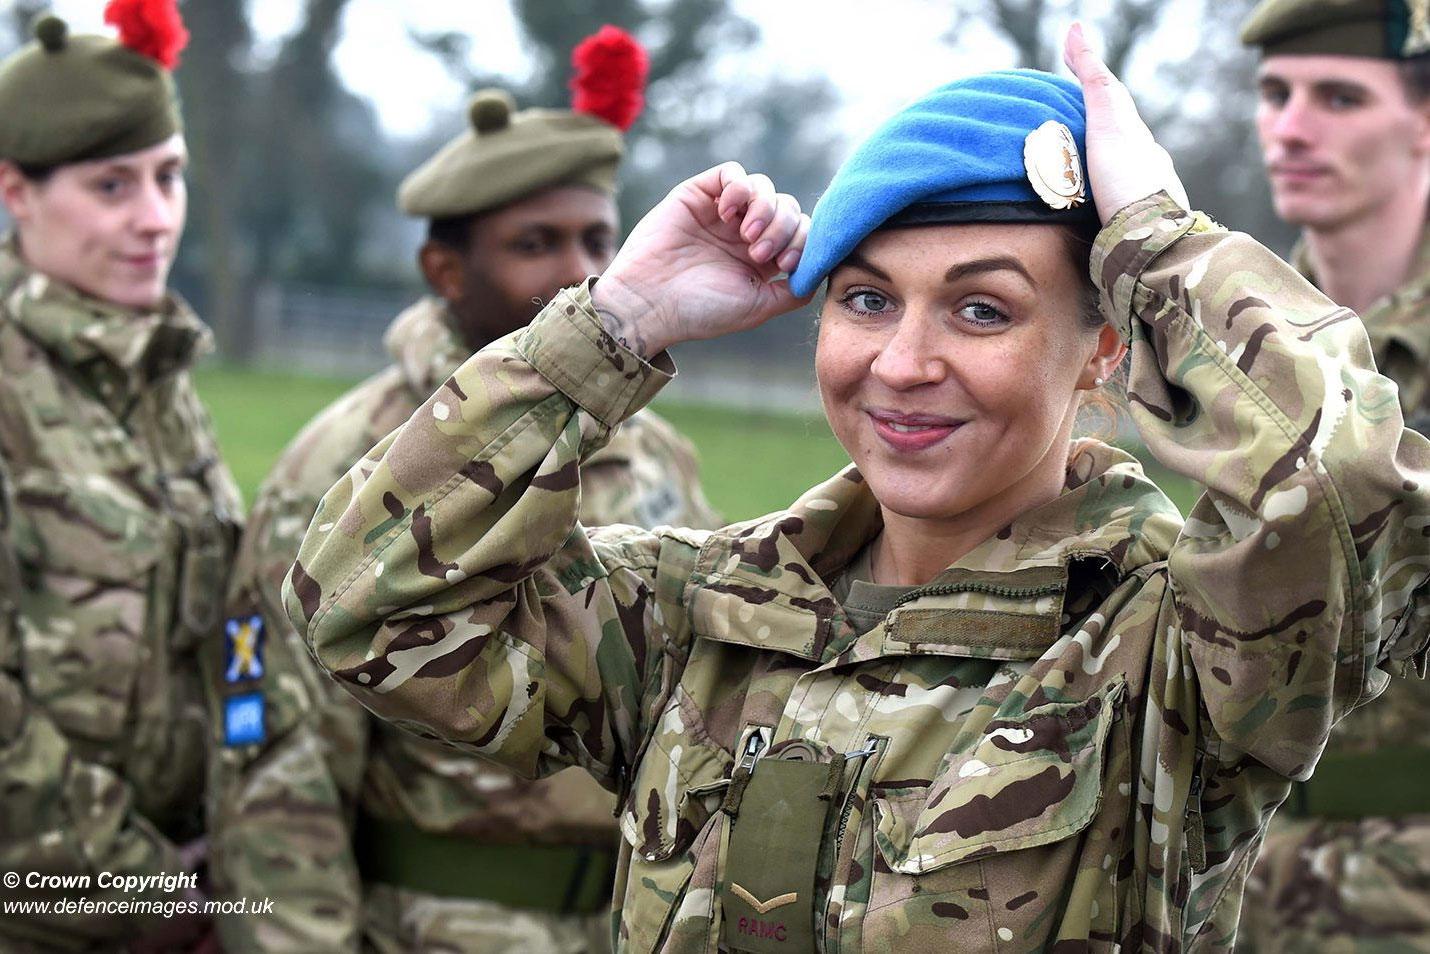 British Commander At Un Mission In South Sudan Serves As